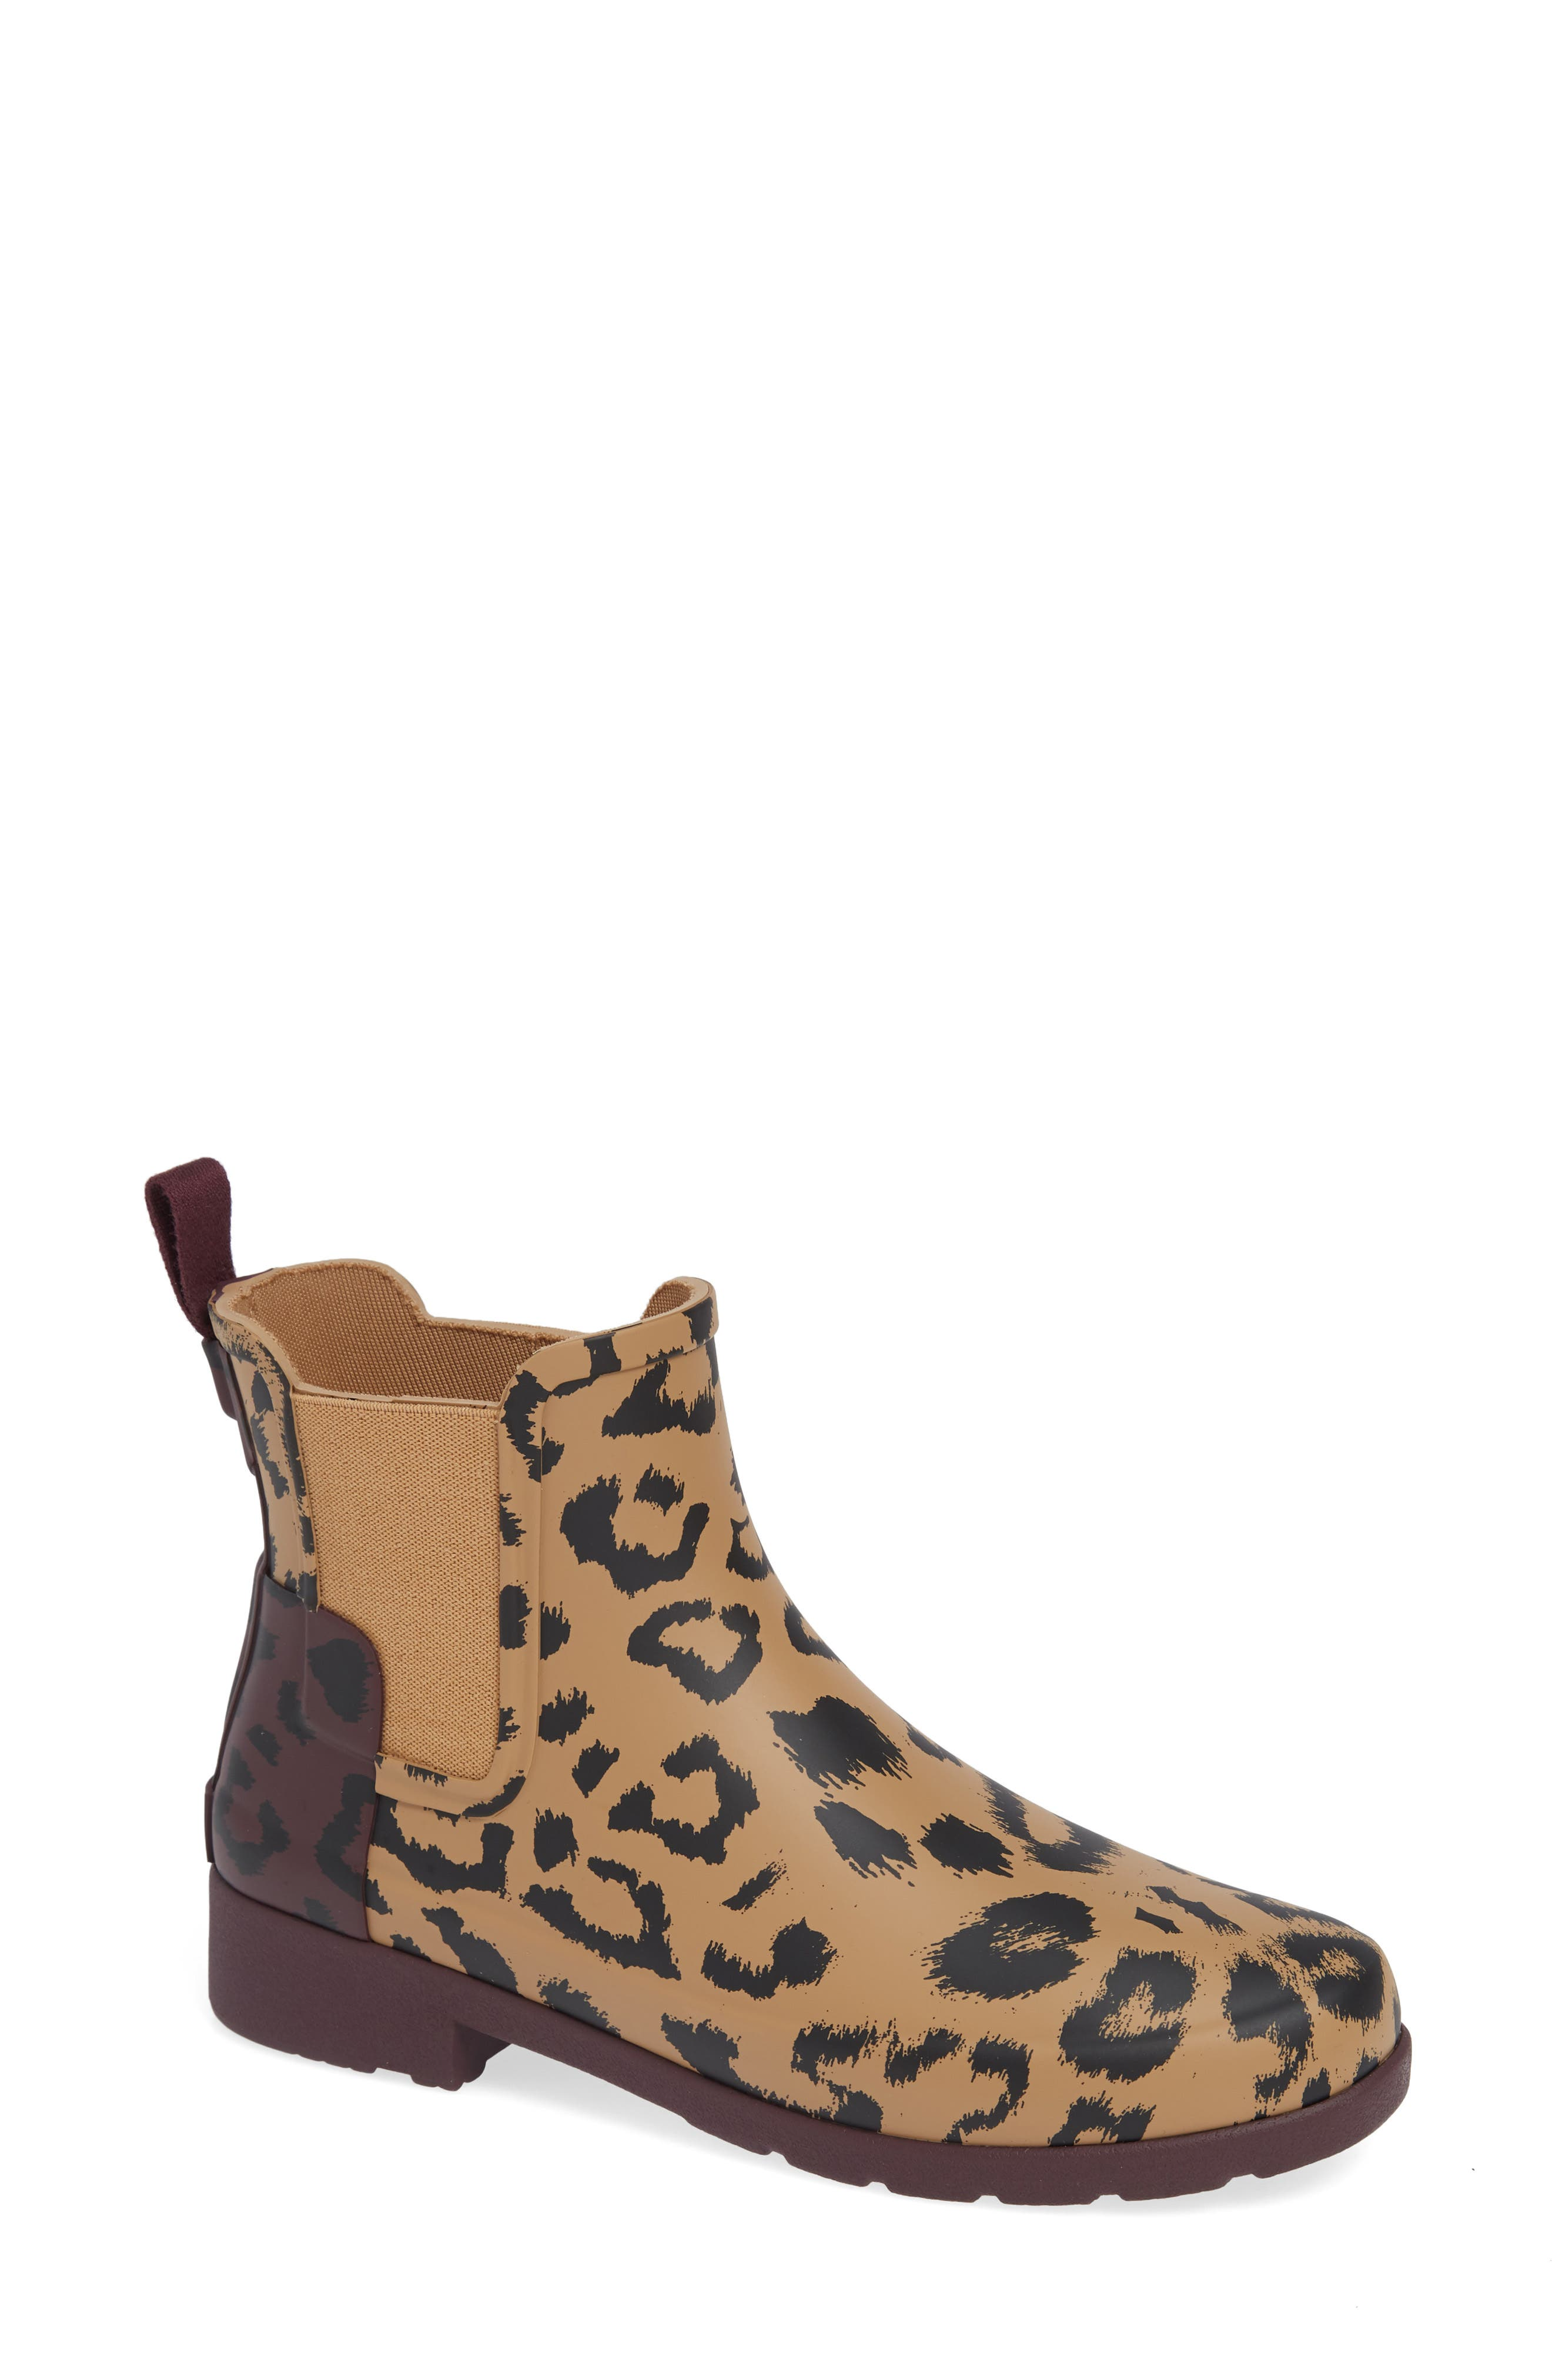 HUNTER,                             Original Leopard Print Refined Chelsea Waterproof Rain Boot,                             Main thumbnail 1, color,                             242